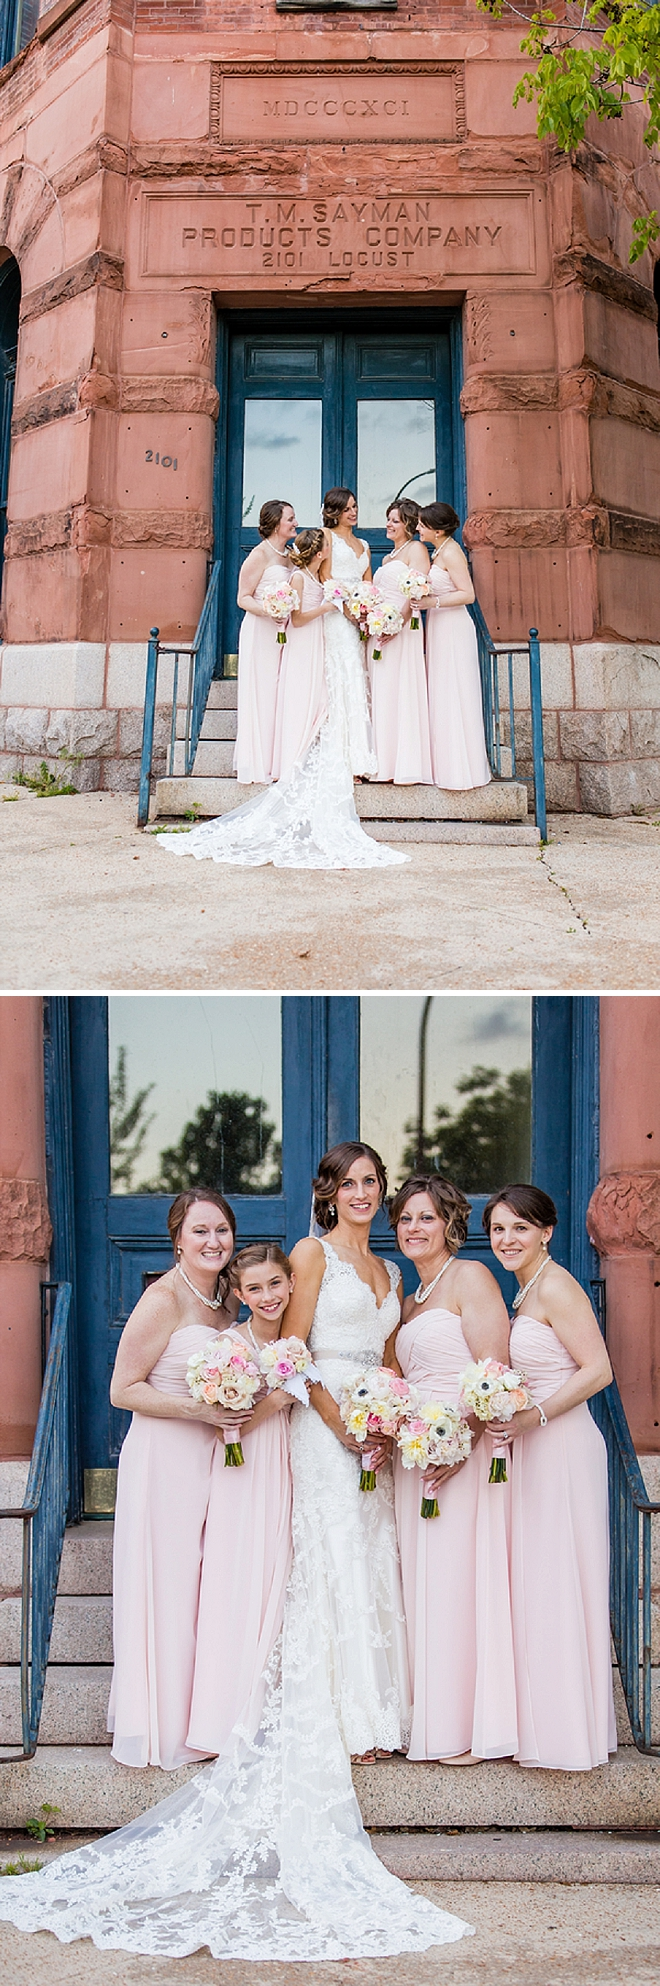 We love this gorgeous Bride and her darling Bridesmaid's before the first look!